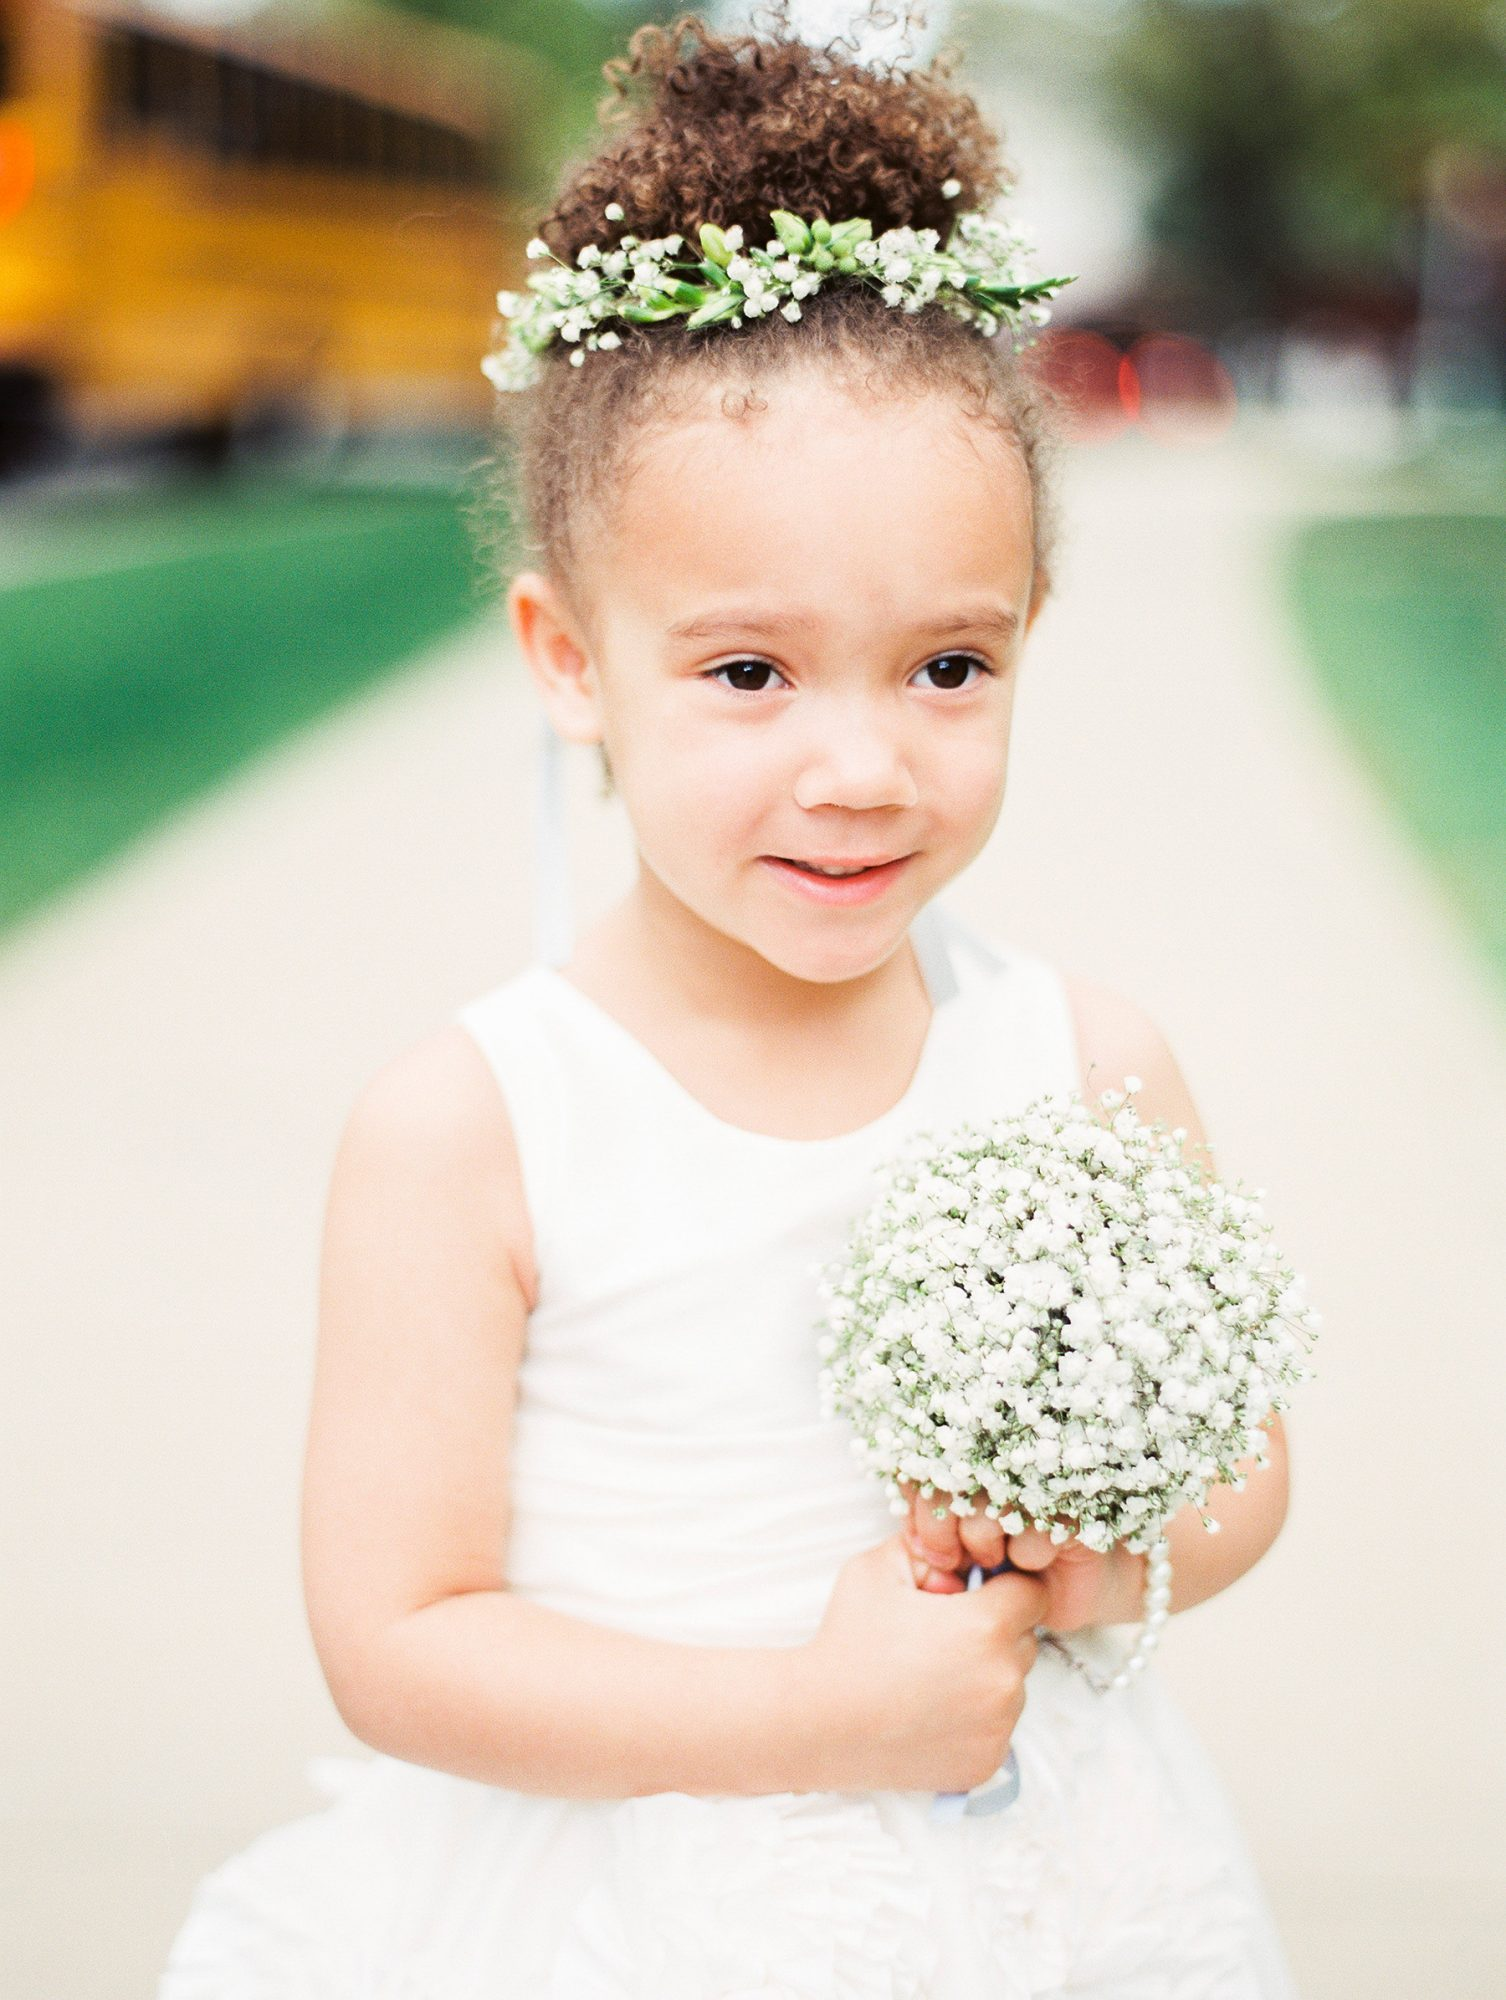 Flower Girl Hair Natural Hair in Bun